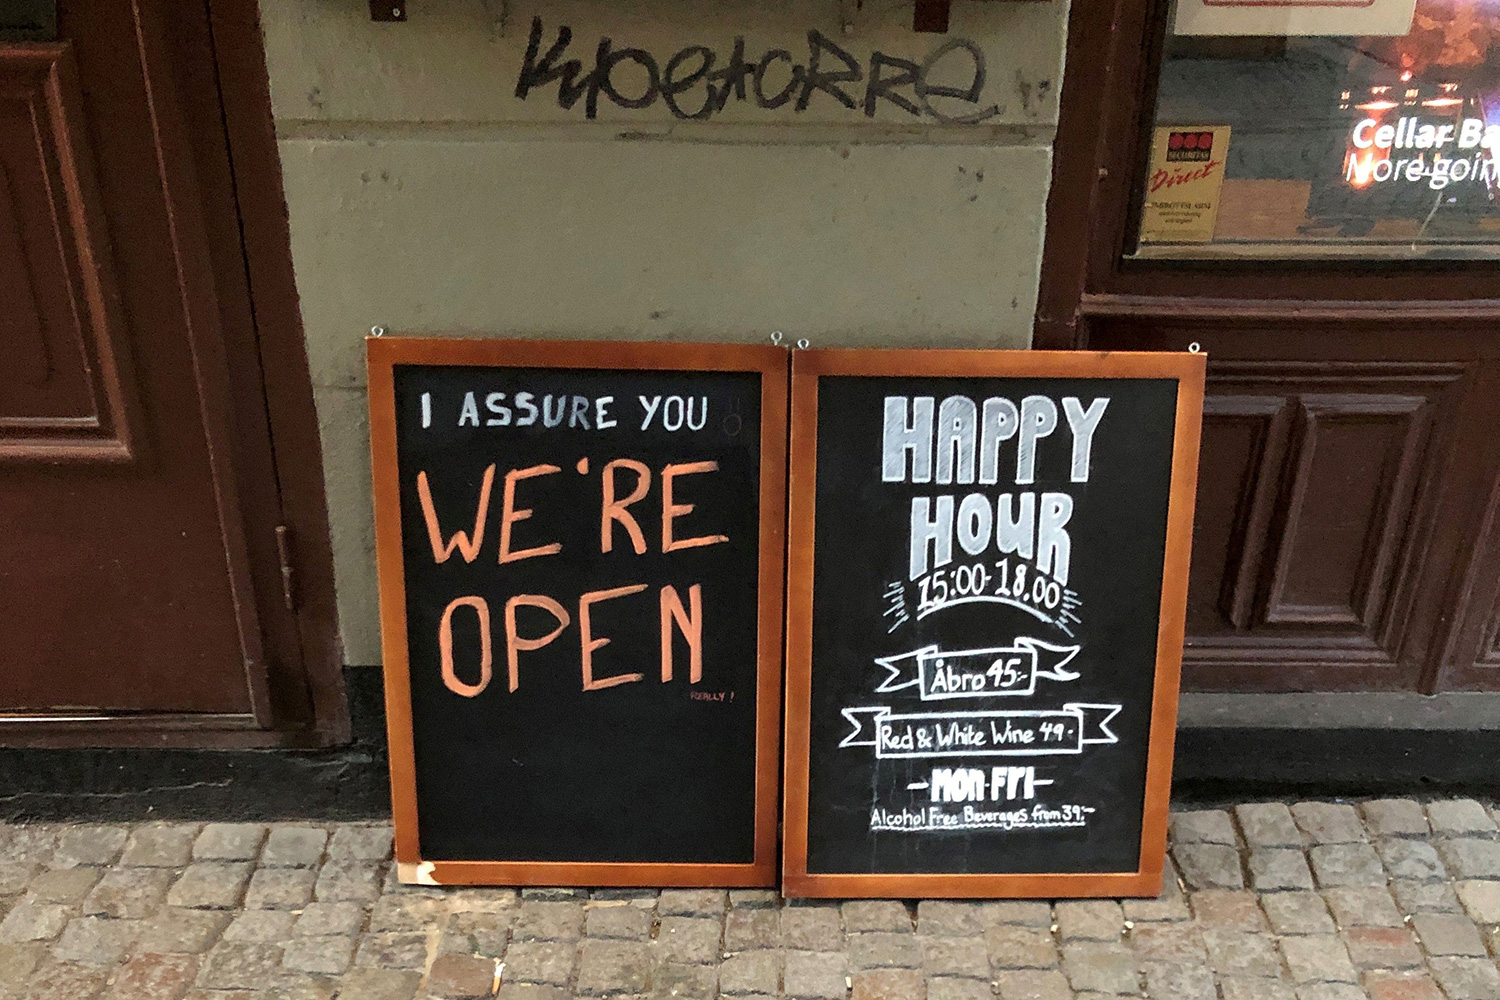 "In a country that didn't lockdown during the coronavirus pandemic, a sign assures people that the bar is open during the COVID-19 outbreak—outside a pub in Stockholm, Sweden, on March 26, 2020. Picture Shows two side-by-side chalk placards in front of a restaurant advertising a happy hour inside. One of the signs reads, ""I assure you WE'RE OPEN."" REUTERS/Colm Fulton"